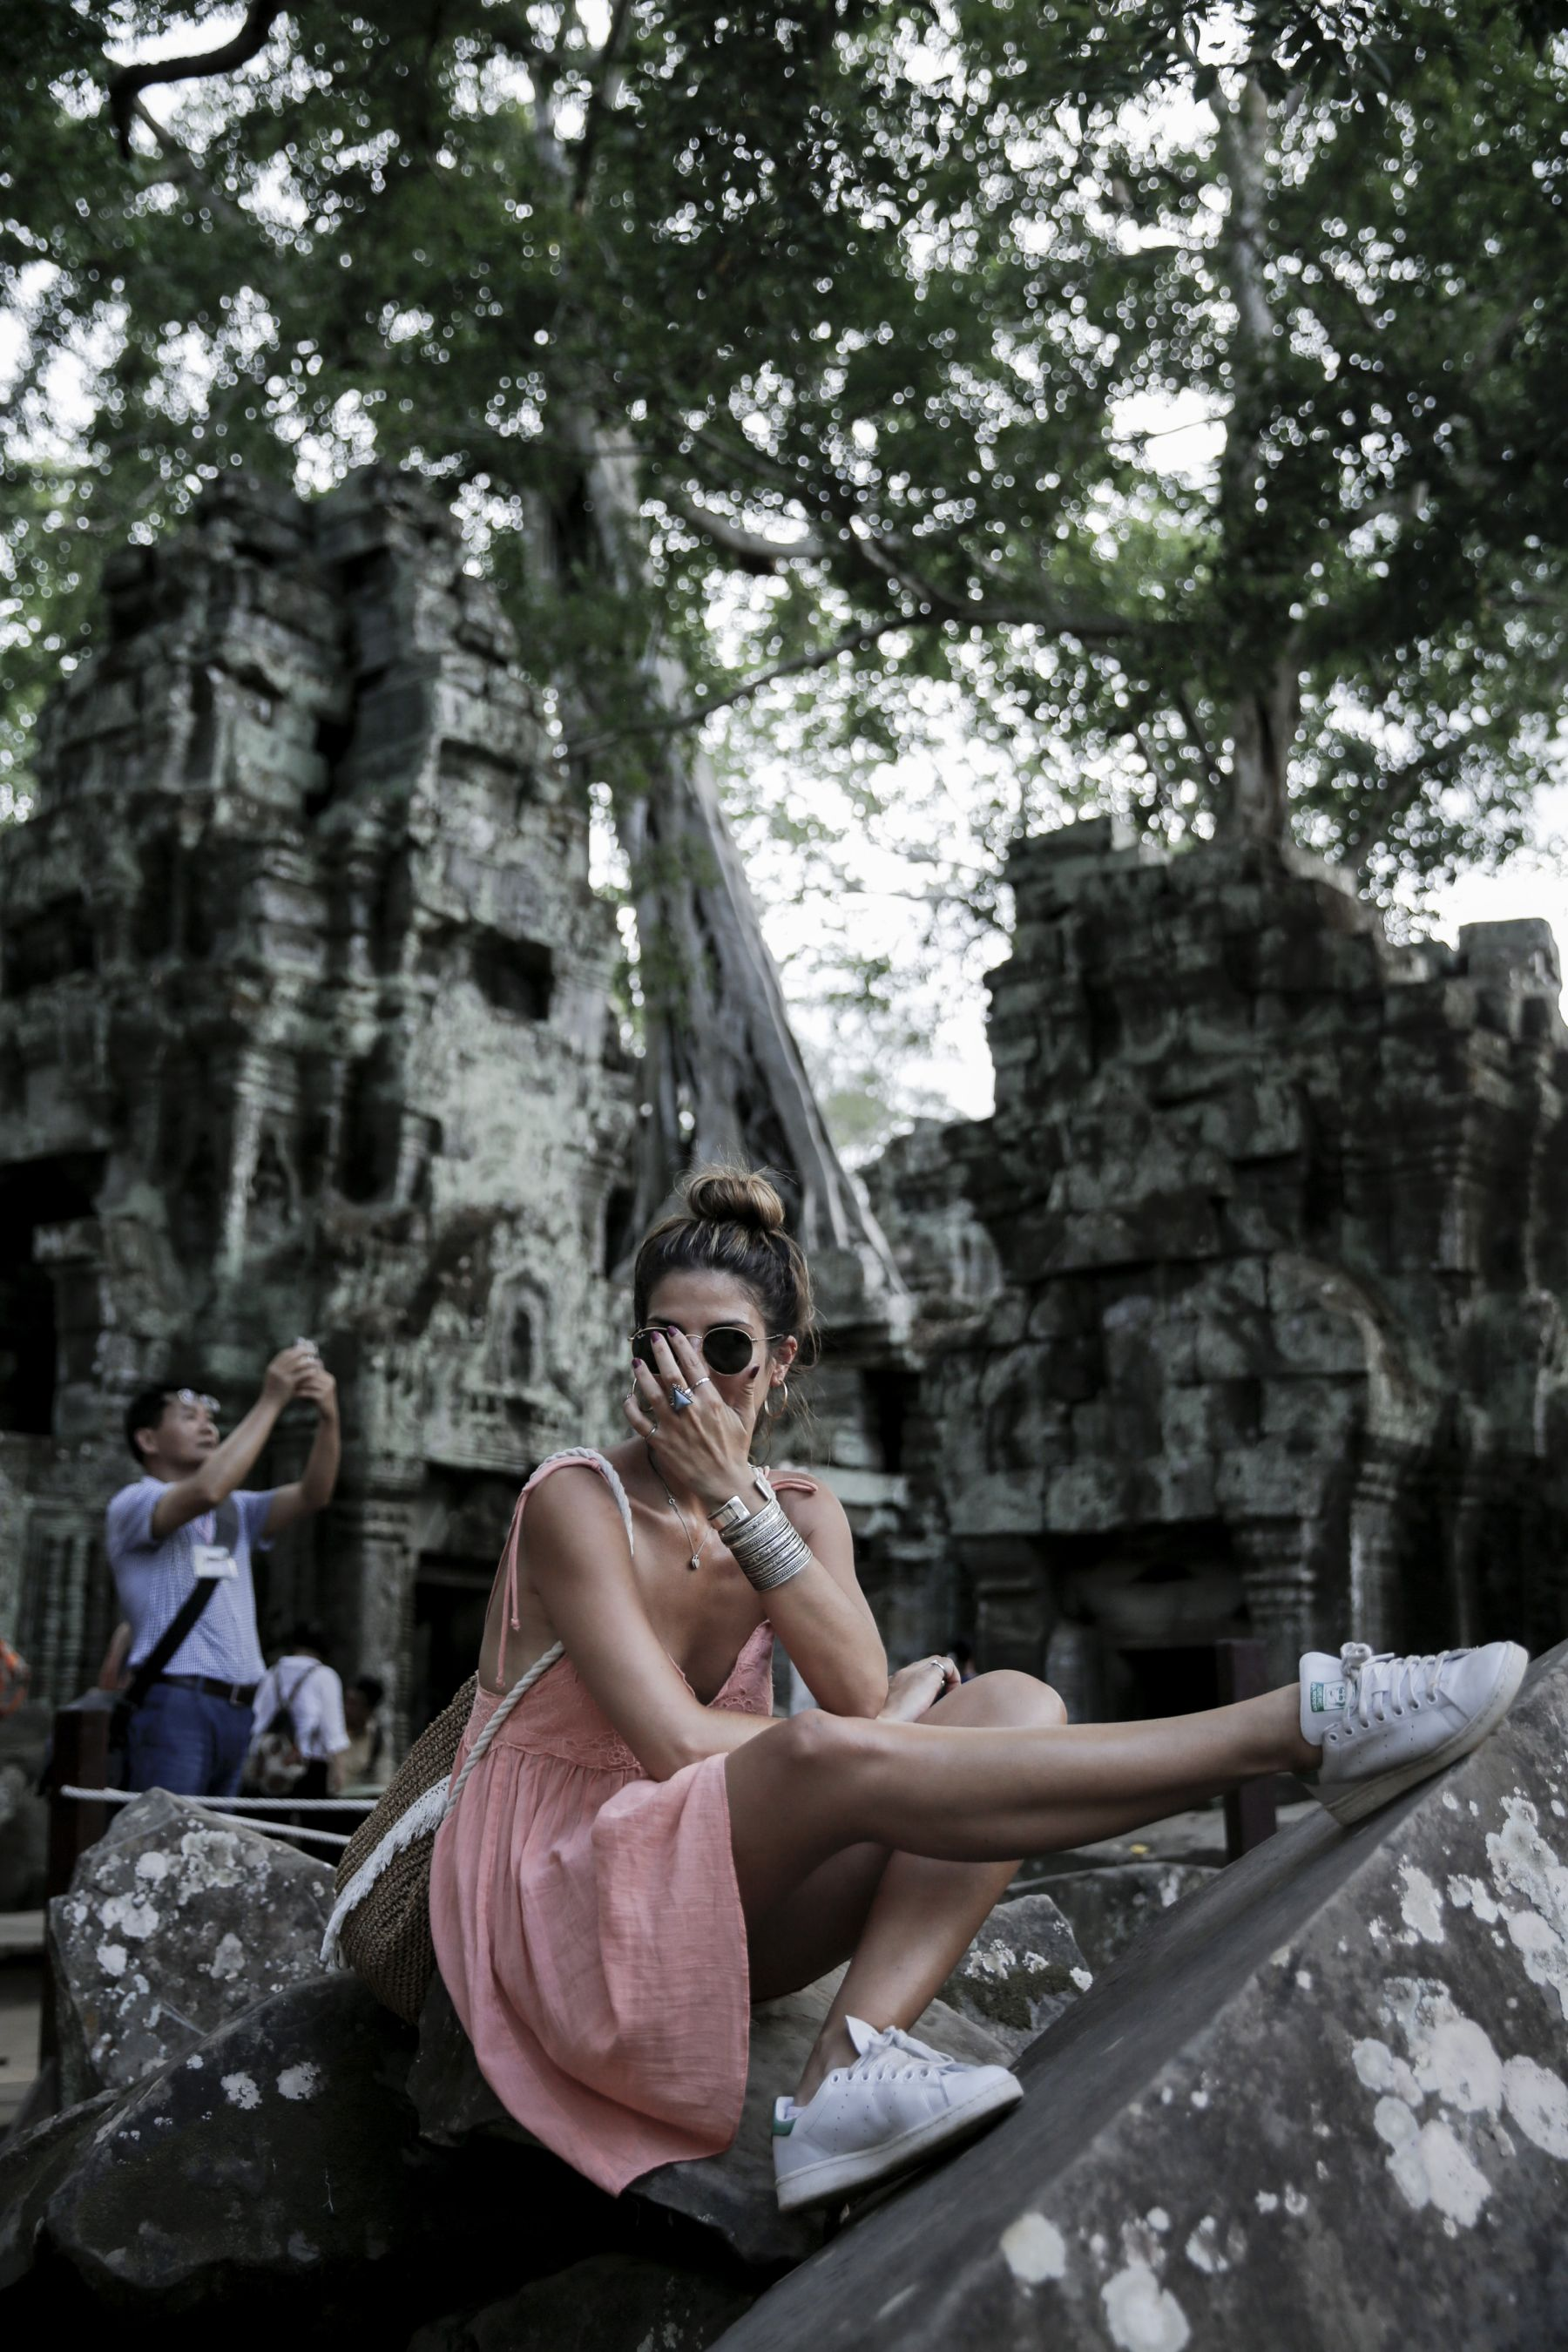 camboya cambodia angkor wat trendy taste summer trip outfit look dress sneakers stan smith vestido zapatillas asos adidas _40